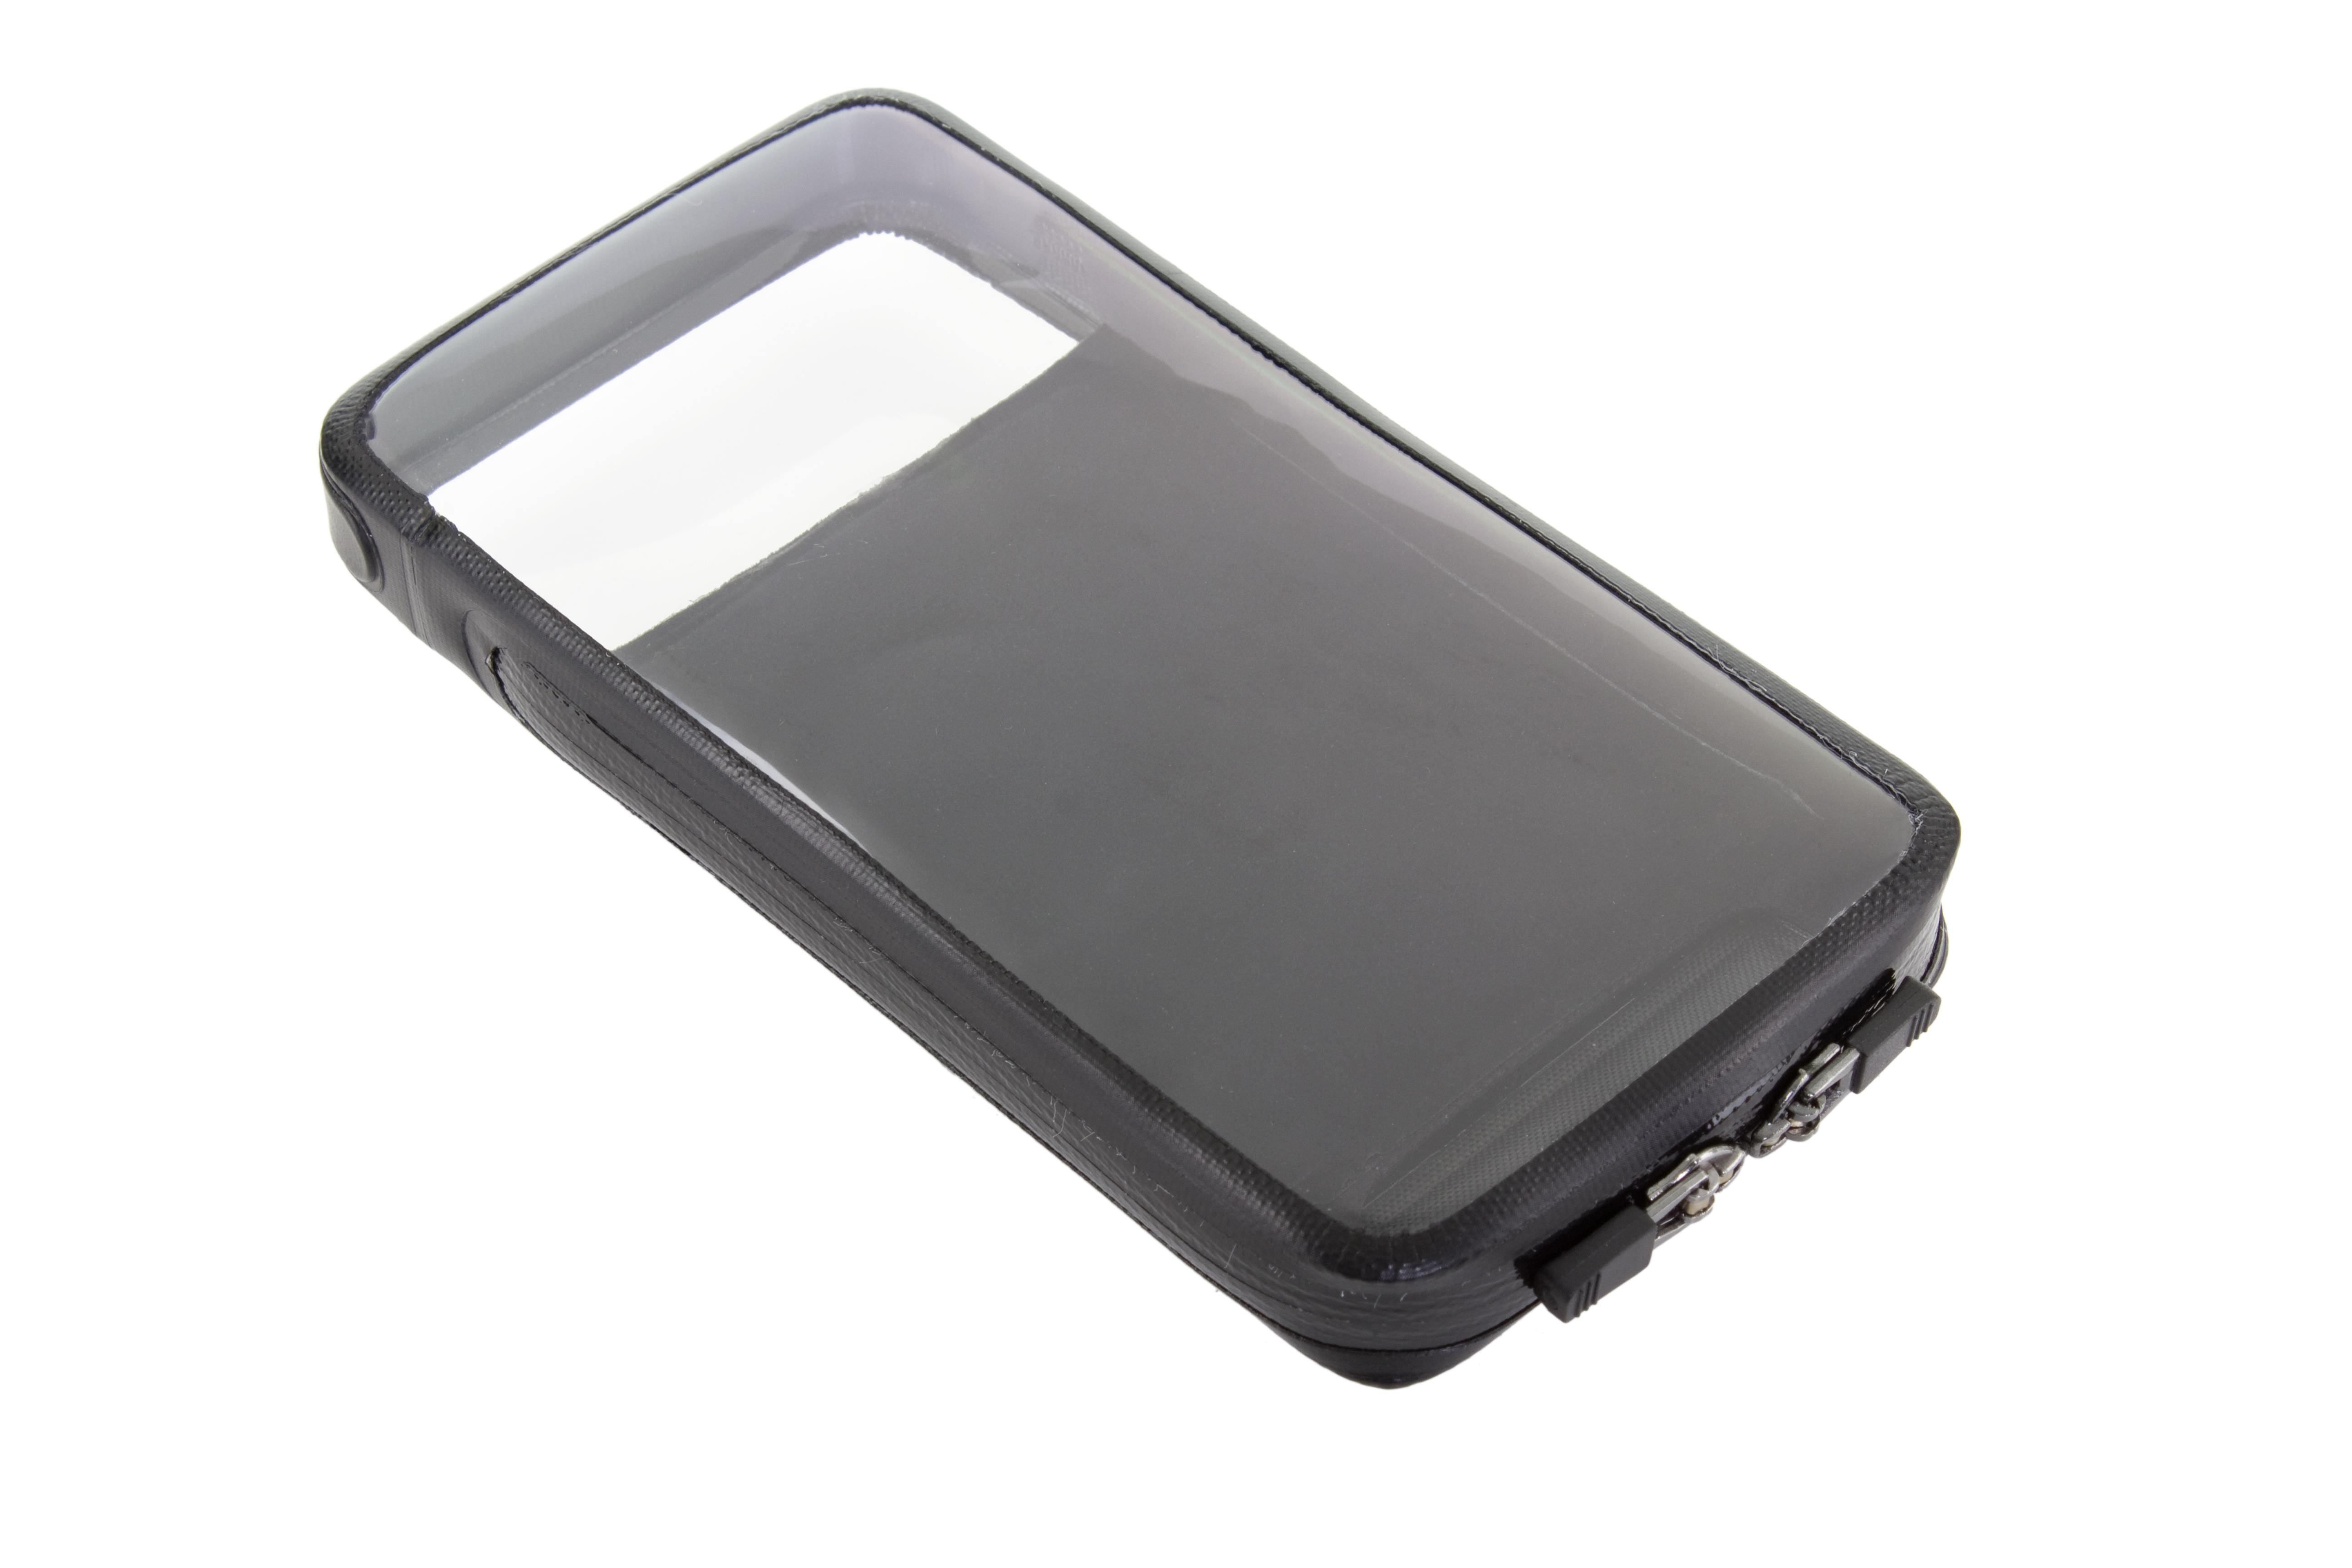 Photo: Made from sonically-welded TPU with rain-proof zippers, the WeatherCase provides access to the touchscreen, front and rear cameras and side volume/power buttons.